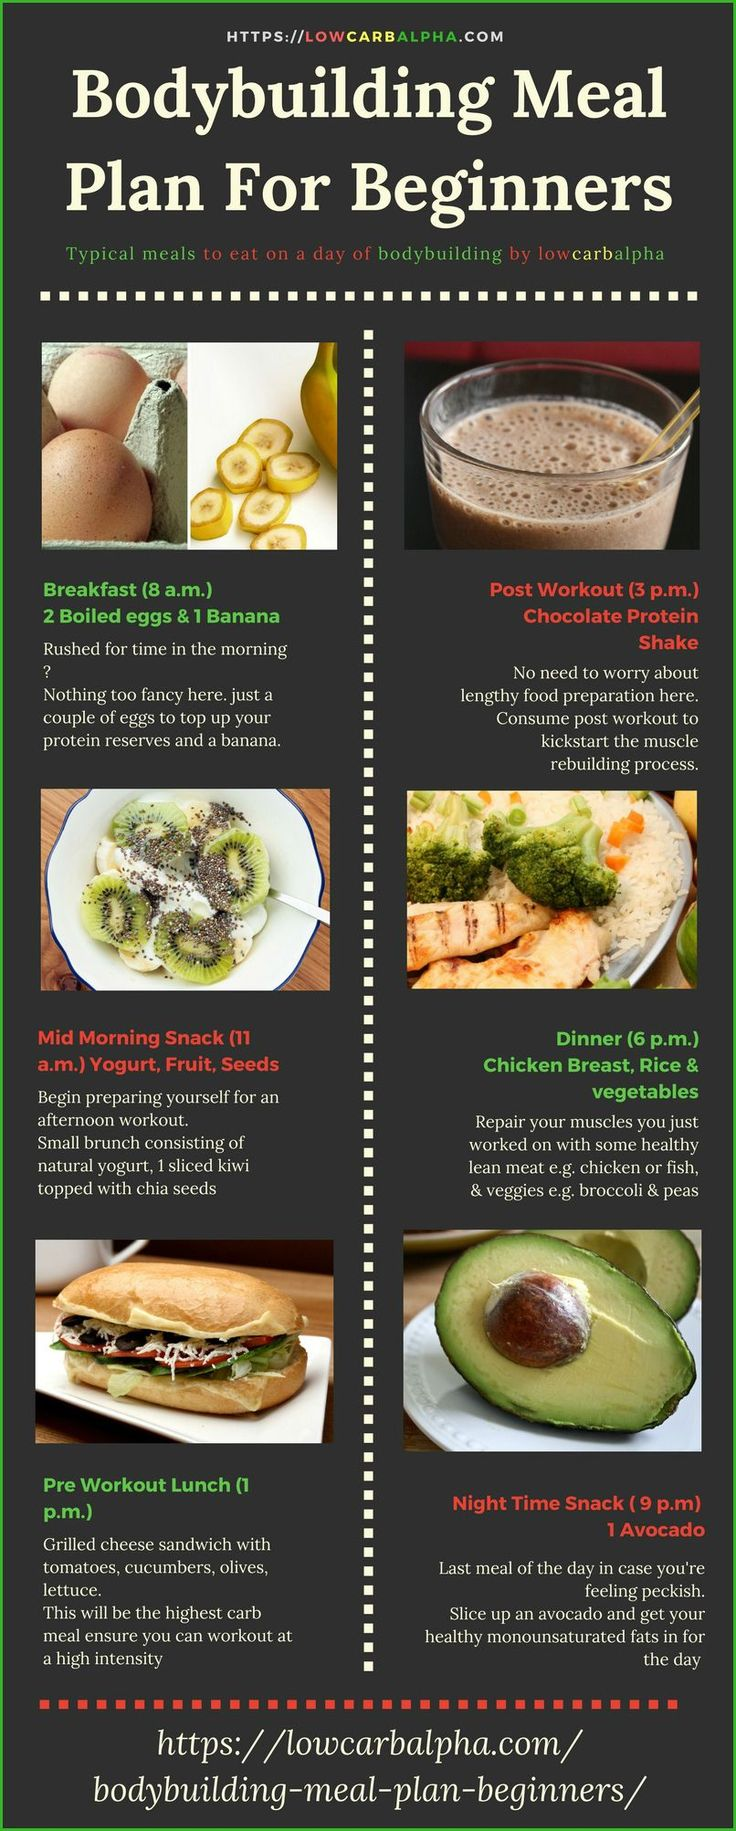 Bodybuilding Meal Plan For Beginners https://lowcarbalpha.com/bodybuilding-meal-plan-beginners/ including sample foods for a bodybuilder to eat in a day. Build muscle easier, hit your macros & record progress #cookingforbeginners